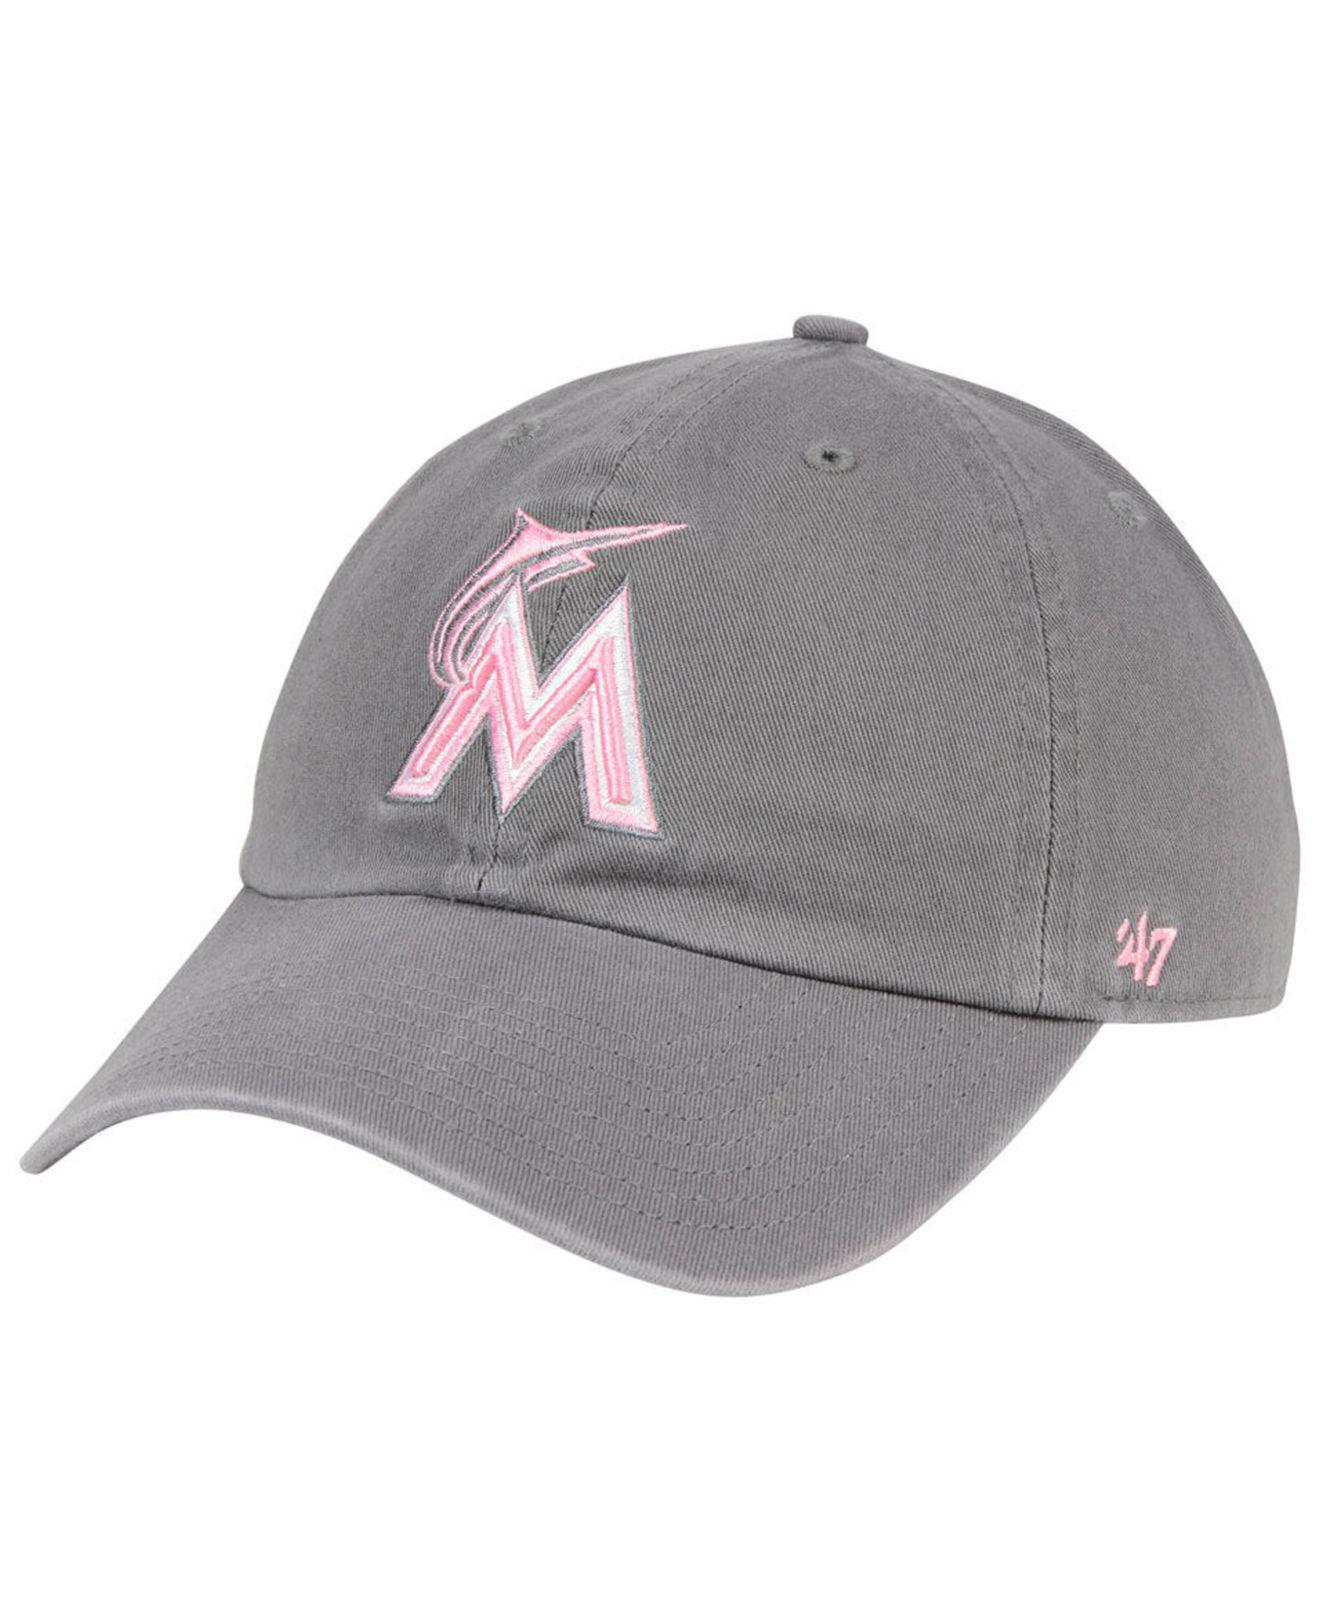 outlet store 7a24e 391df ... coupon for 47 brand. womens miami marlins dark gray pink clean up cap  e2113 19a53